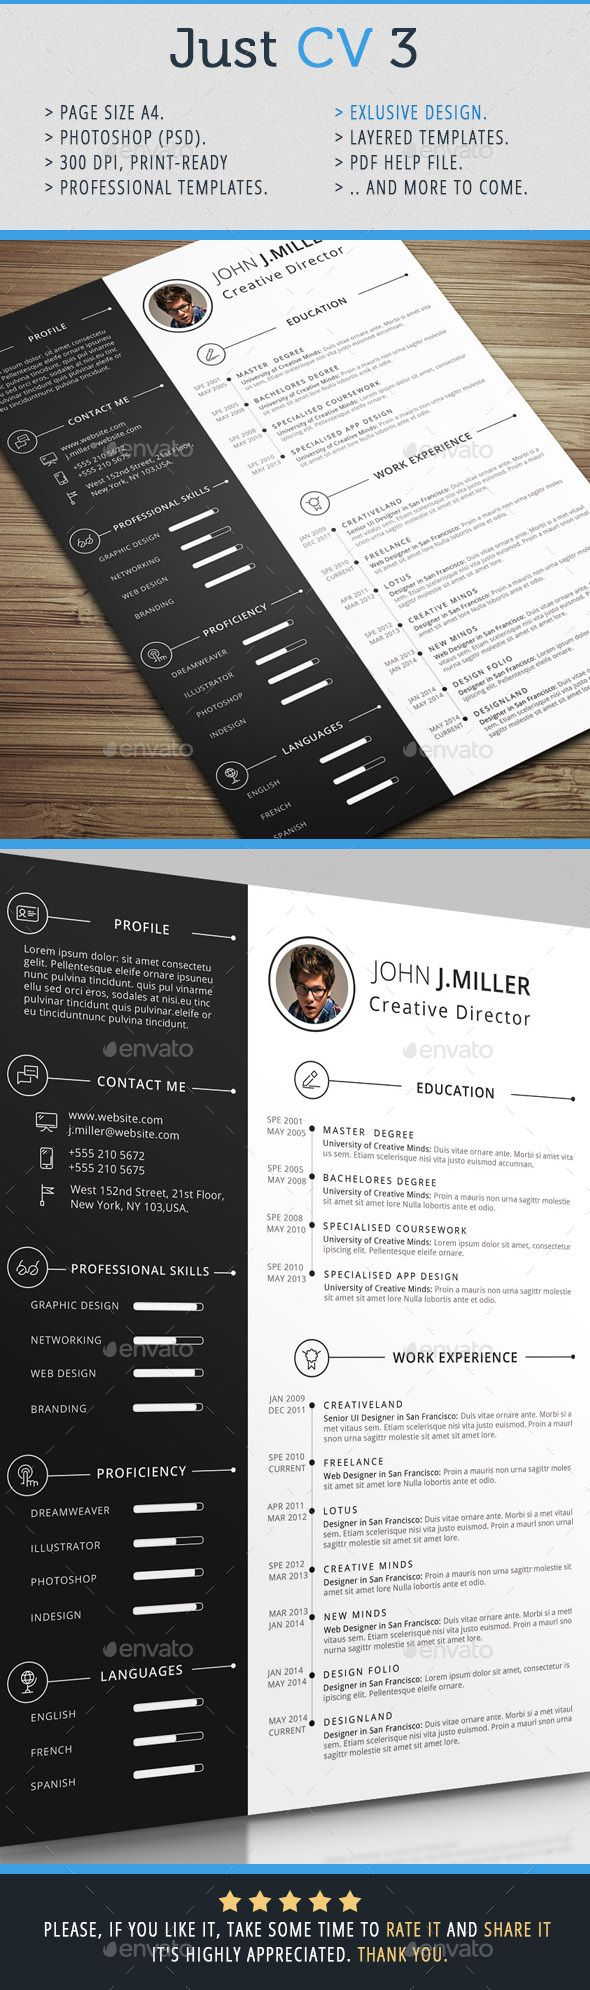 how to make a video resume%0A Best     Cv structure ideas on Pinterest   Resume structure  Best cv layout  and Create a cv